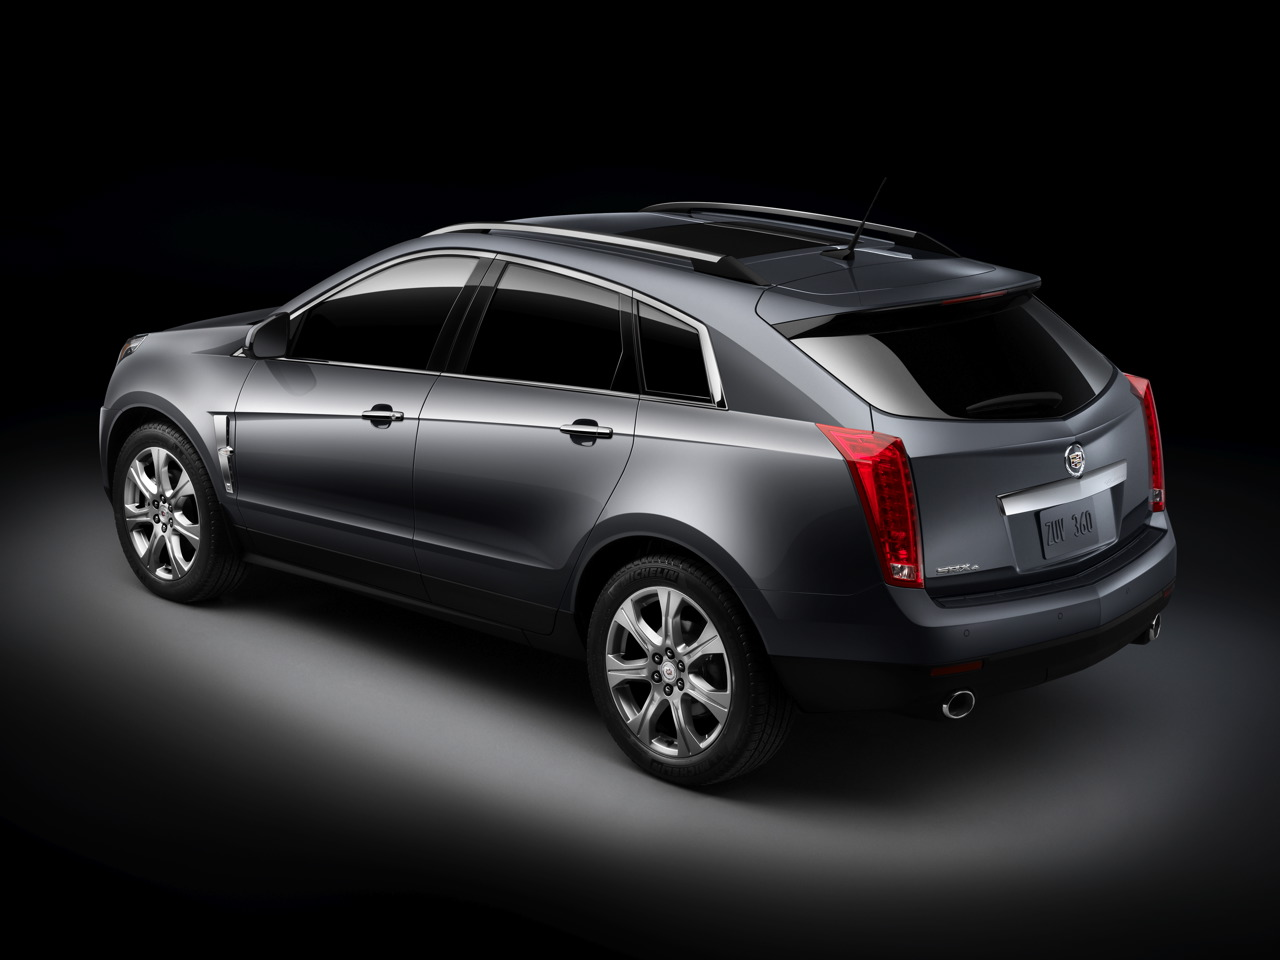 suv cadillac for models vehiclesearchresults ext va vehicles sale news vehicle in gba newport used photo srx